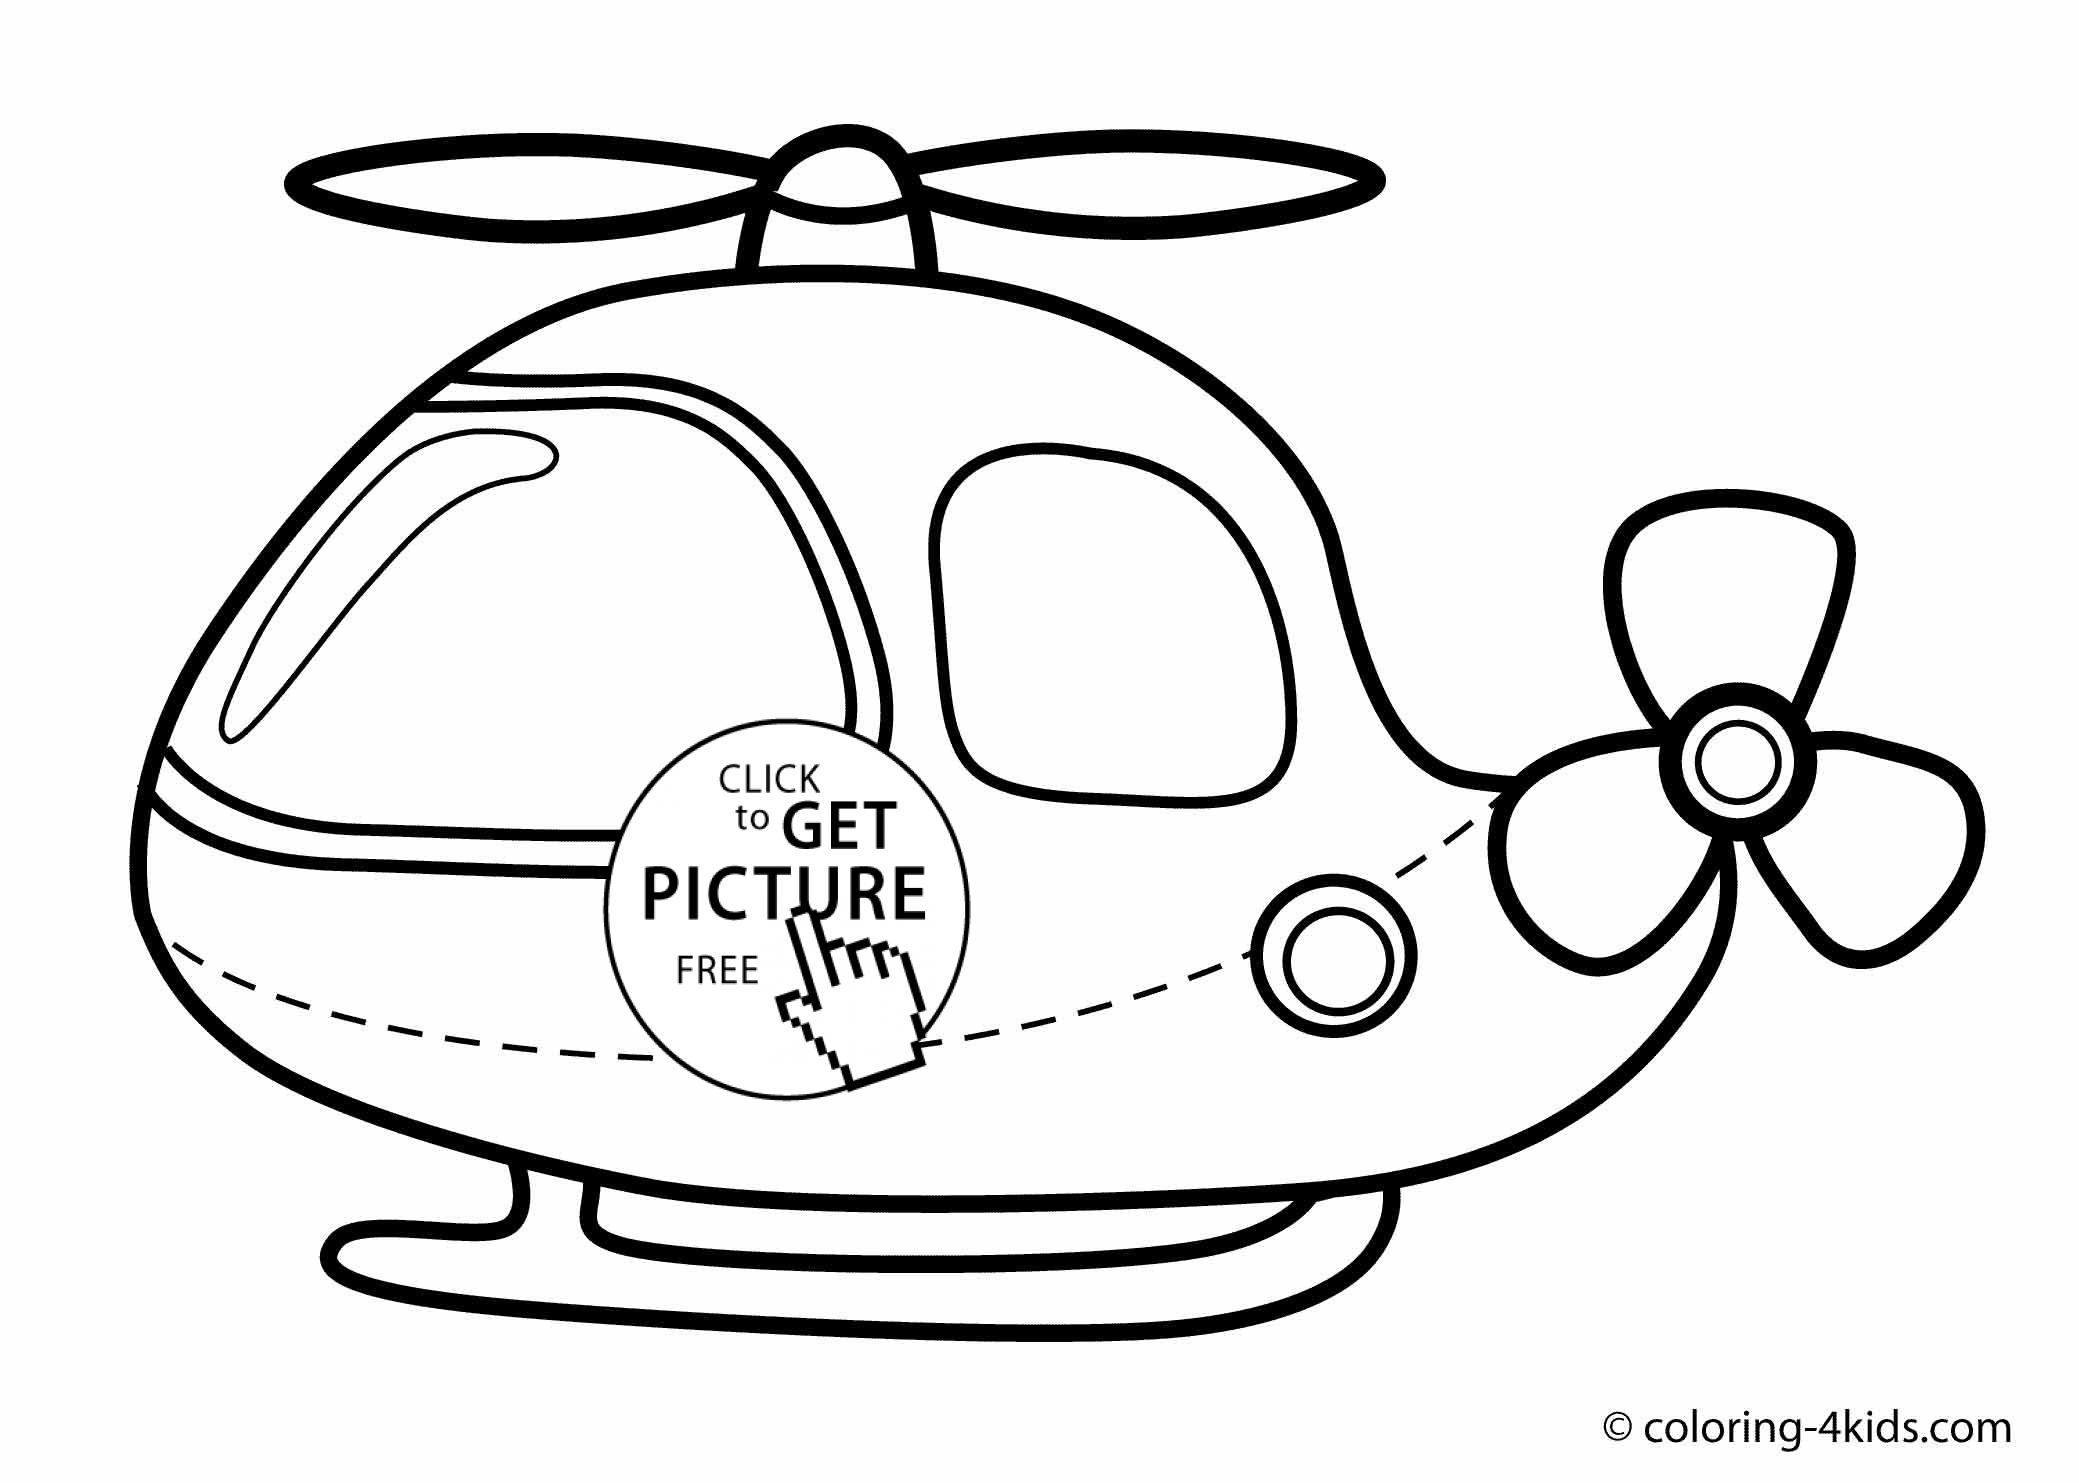 helicopter coloring page for kids printable free helicopter coloring books - Coloringbook Pages